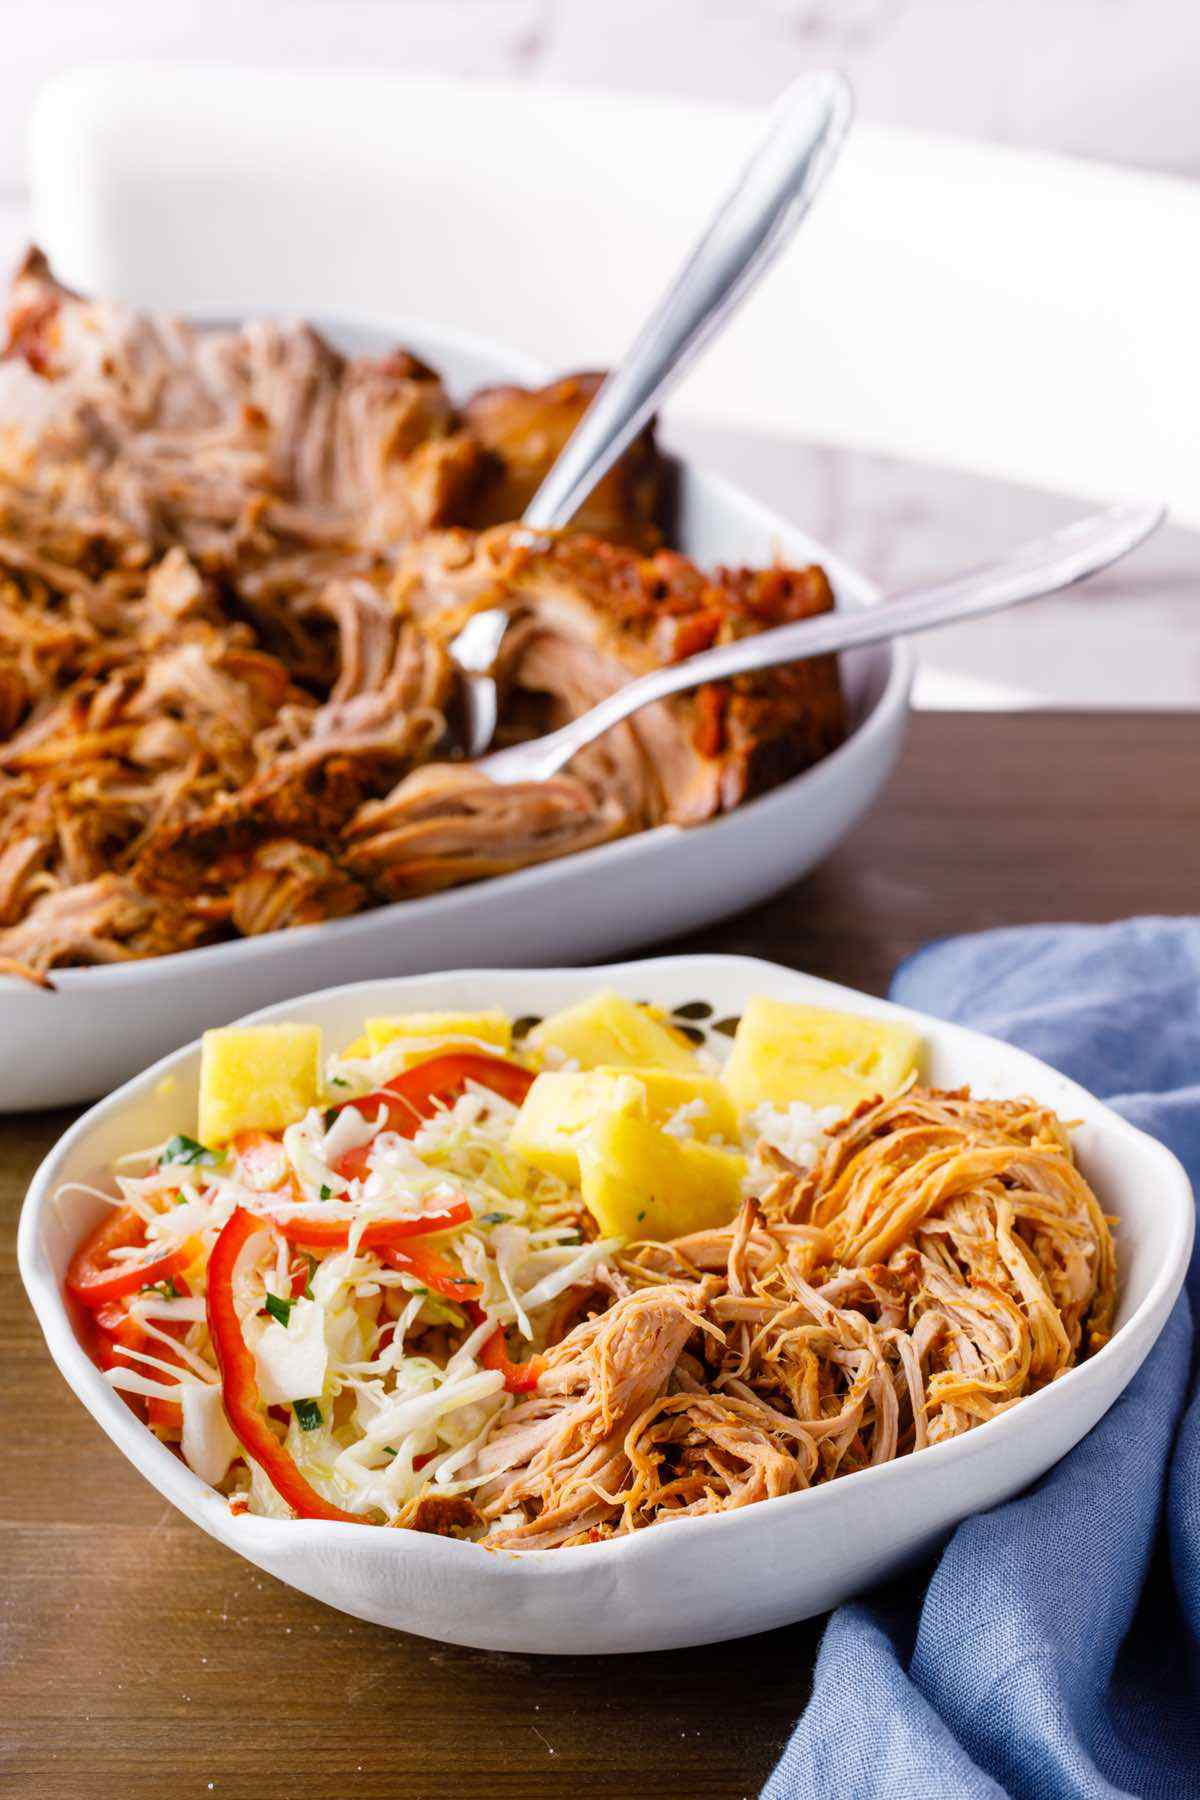 paleo shredded pork burrito bowls